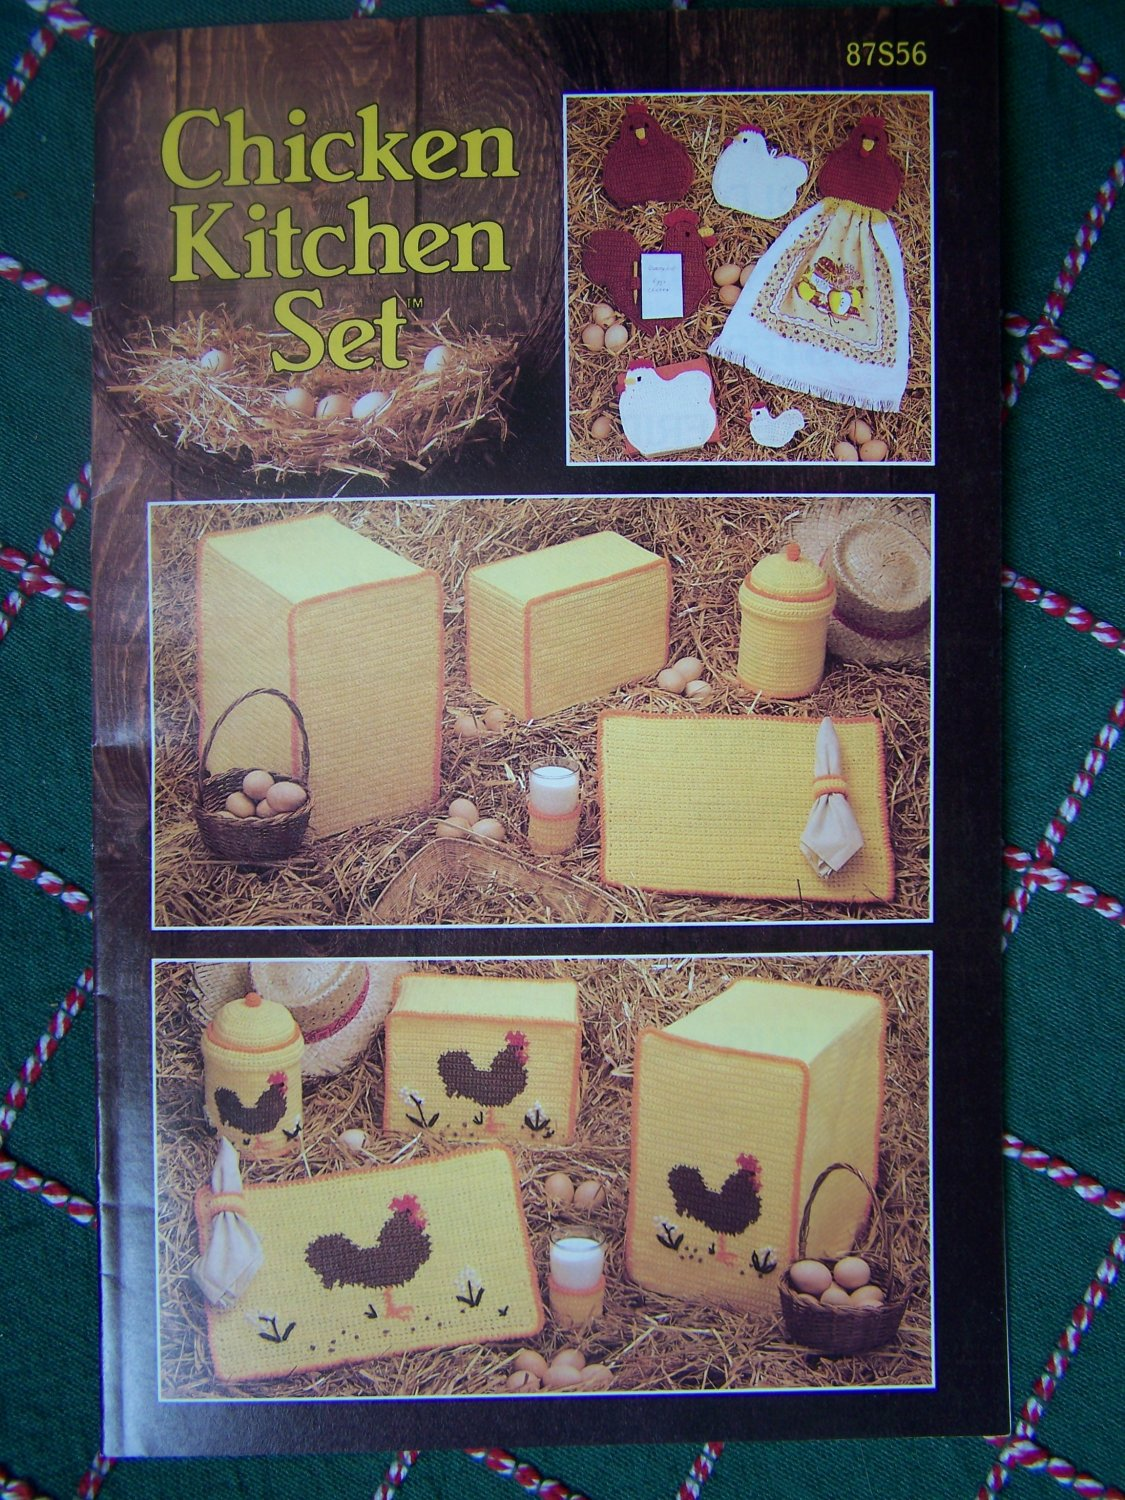 S&H Free USA Annie's Attic Crochet Patterns Chicken & Rooster Kitchen Set Book 87S56